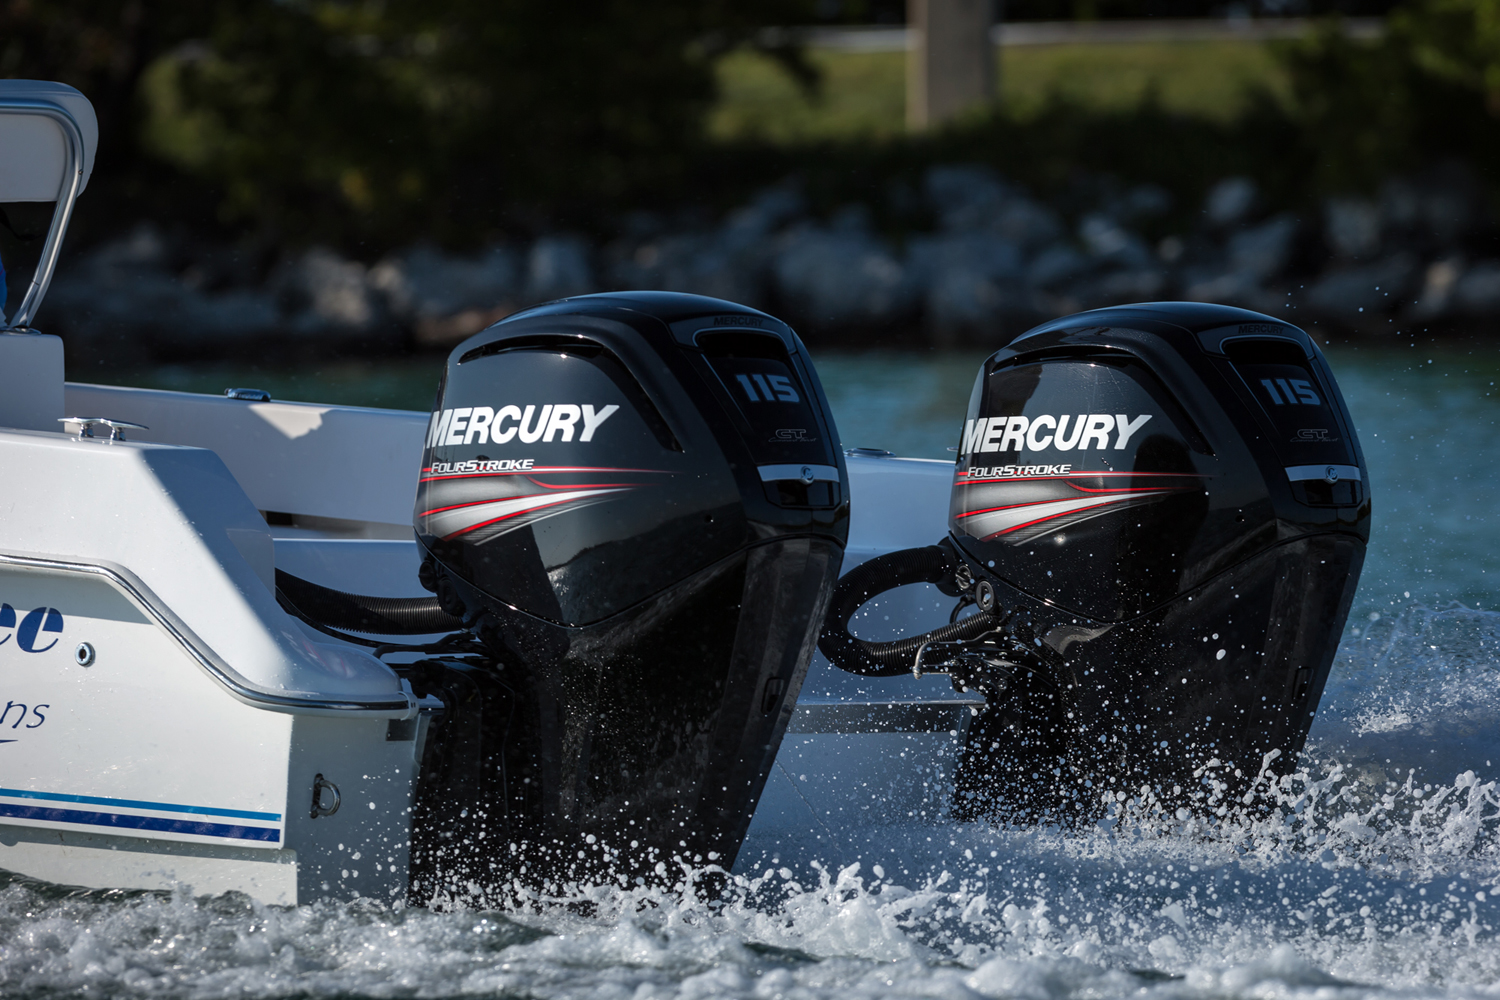 yamaha 90hp outboard wiring diagram for 2002 ford escape radio new mercury 150 fourstroke debuts - boats.com